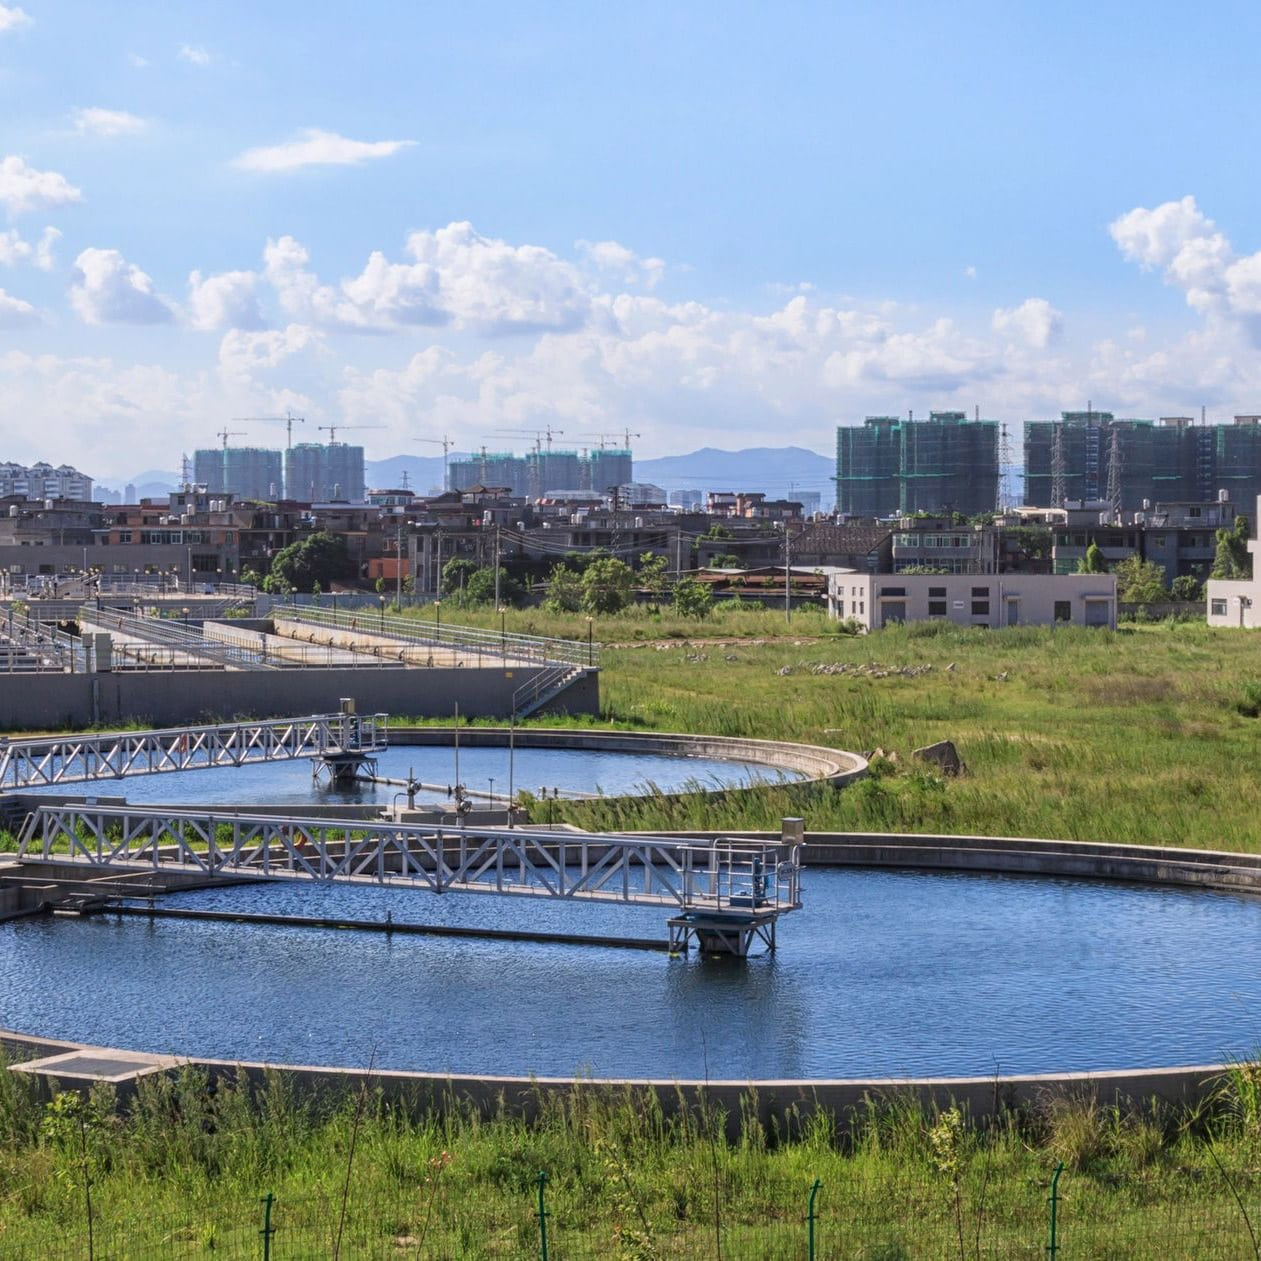 Water & Wastewater Treatment plant